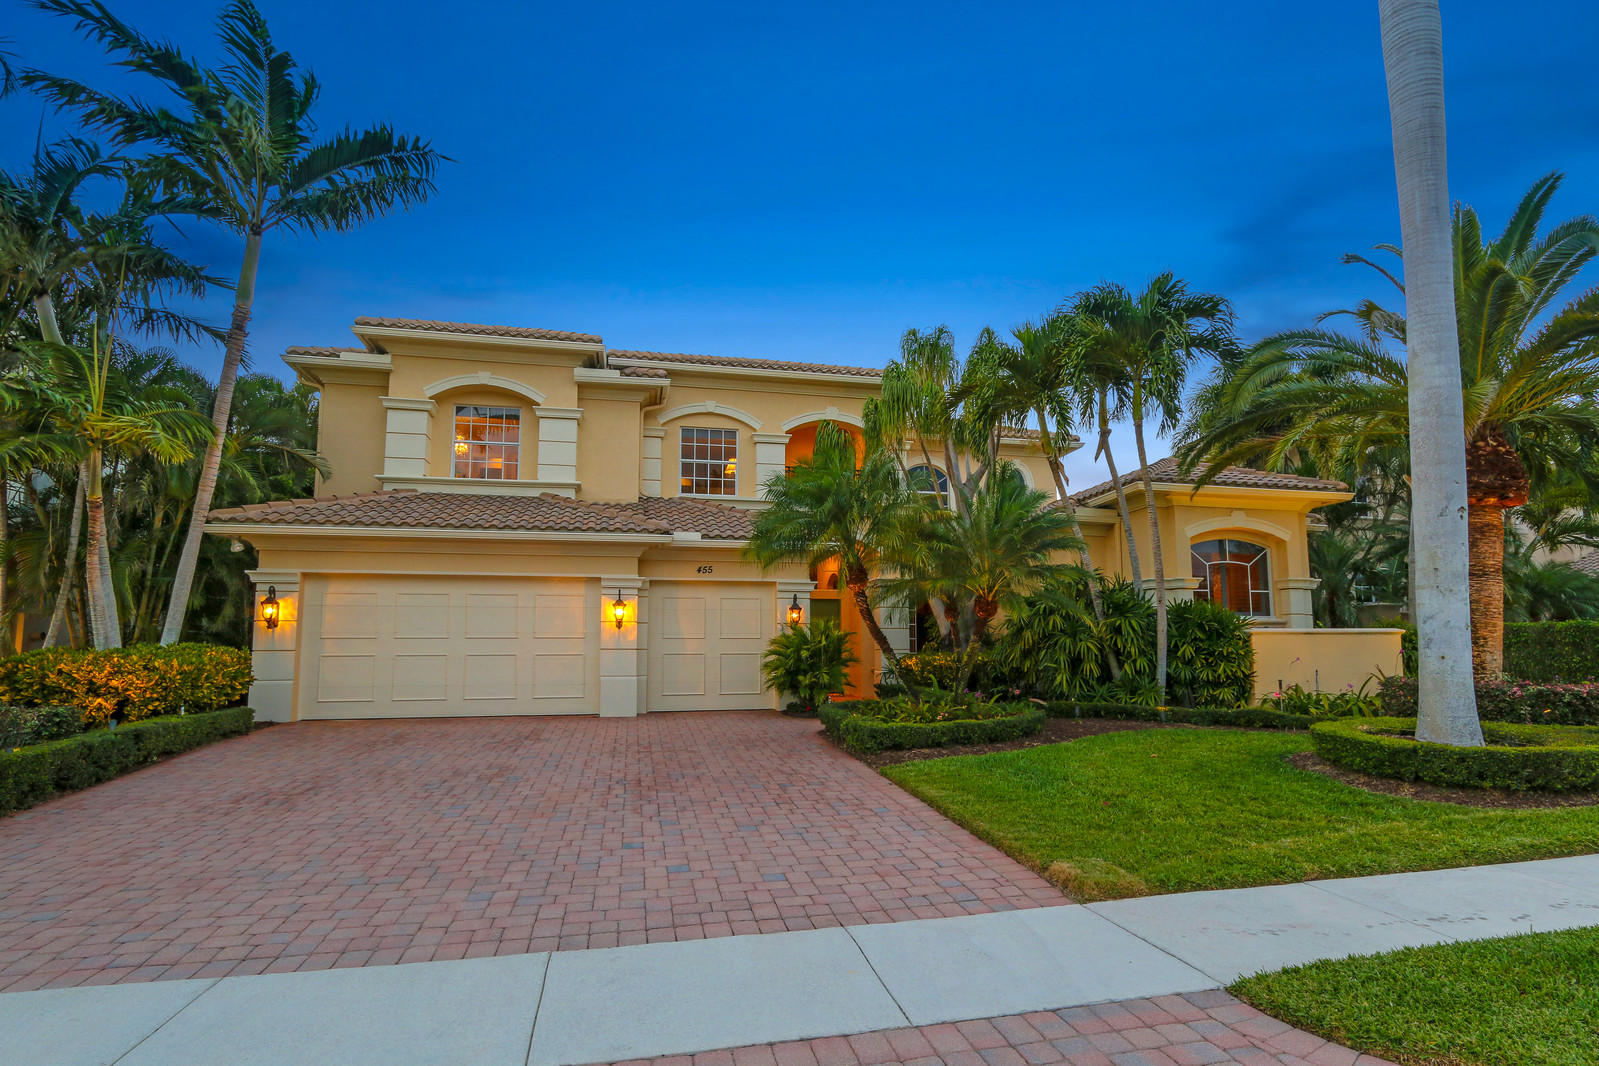 455 Savoie Drive, Palm Beach Gardens, Florida 33410, 5 Bedrooms Bedrooms, ,5.1 BathroomsBathrooms,Single Family,For Sale,Savoie,RX-10420557